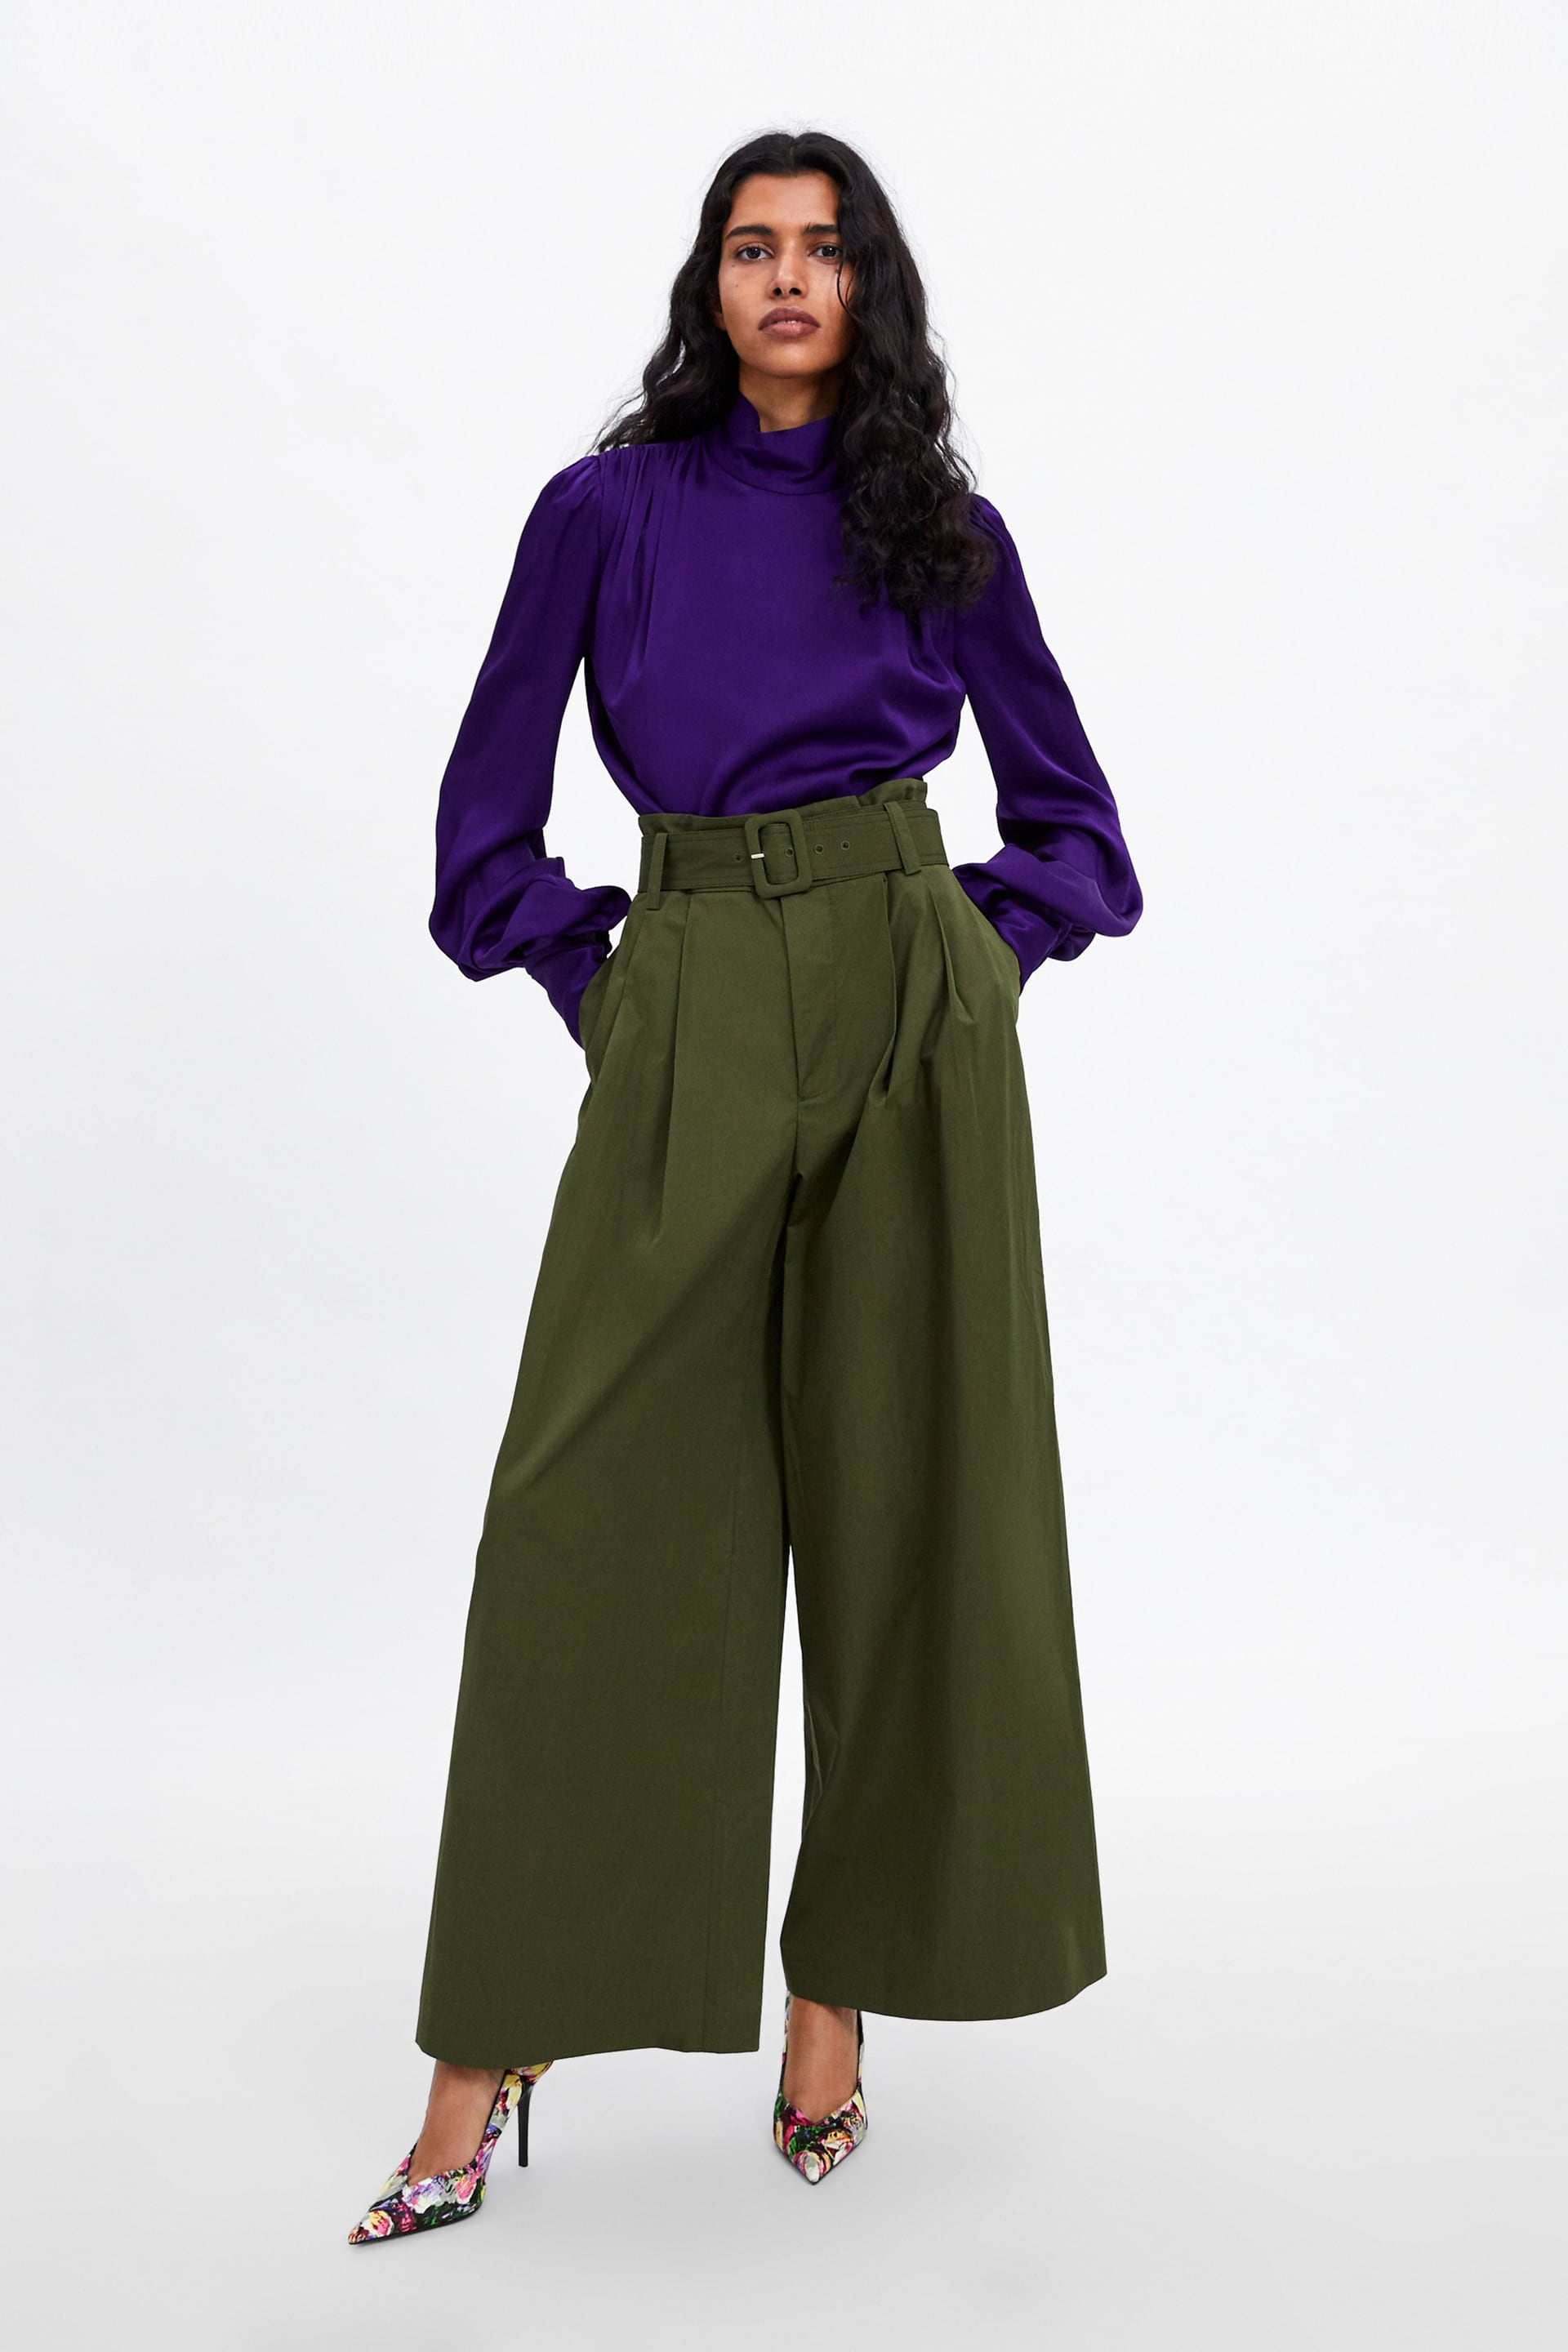 zara -wide leg trousers.jpg